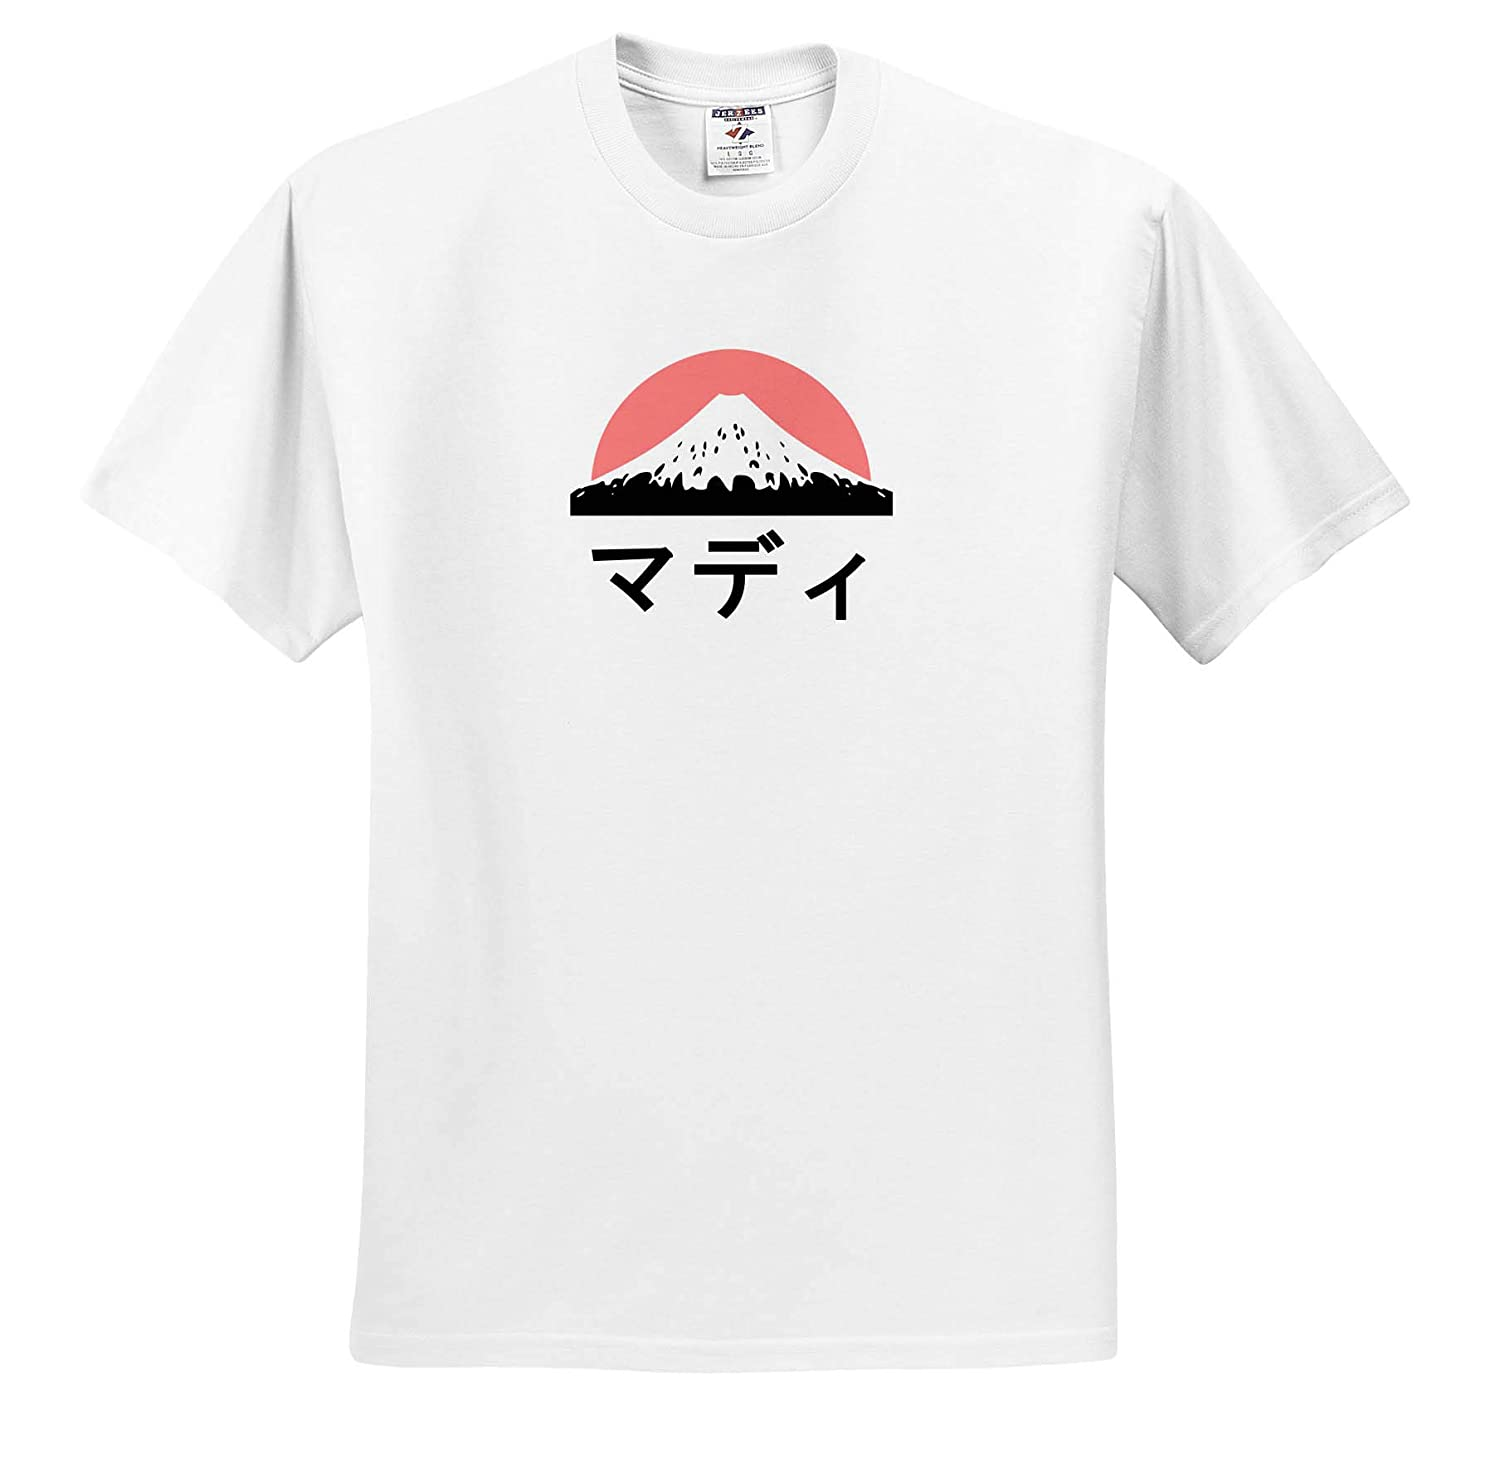 Name in Japanese ts/_320571 Adult T-Shirt XL Maddie in Japanese Letters 3dRose InspirationzStore